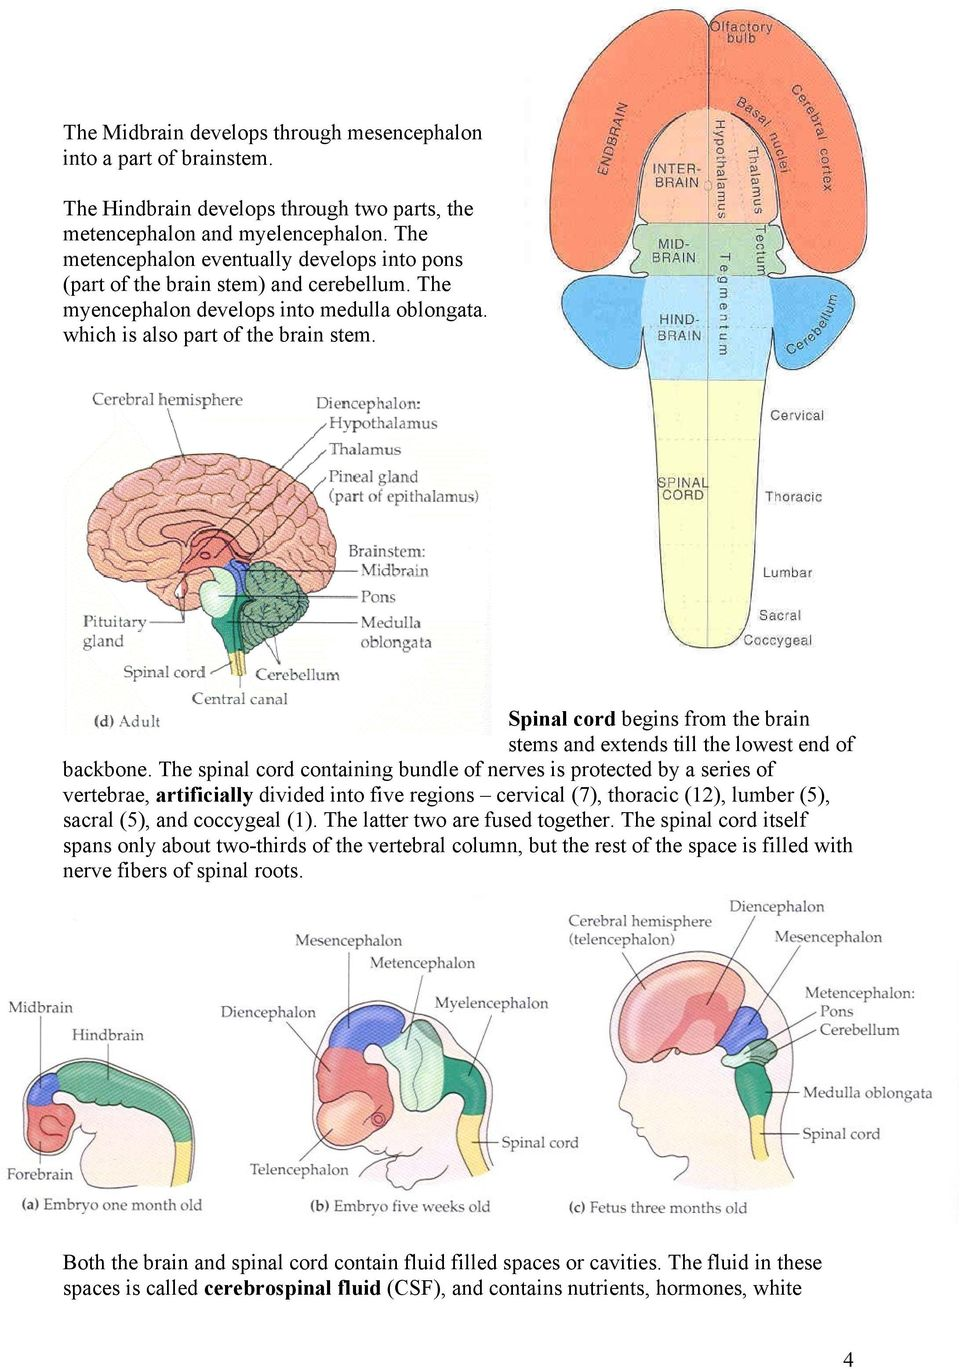 Spinal cord begins from the brain stems and extends till the lowest end of backbone.